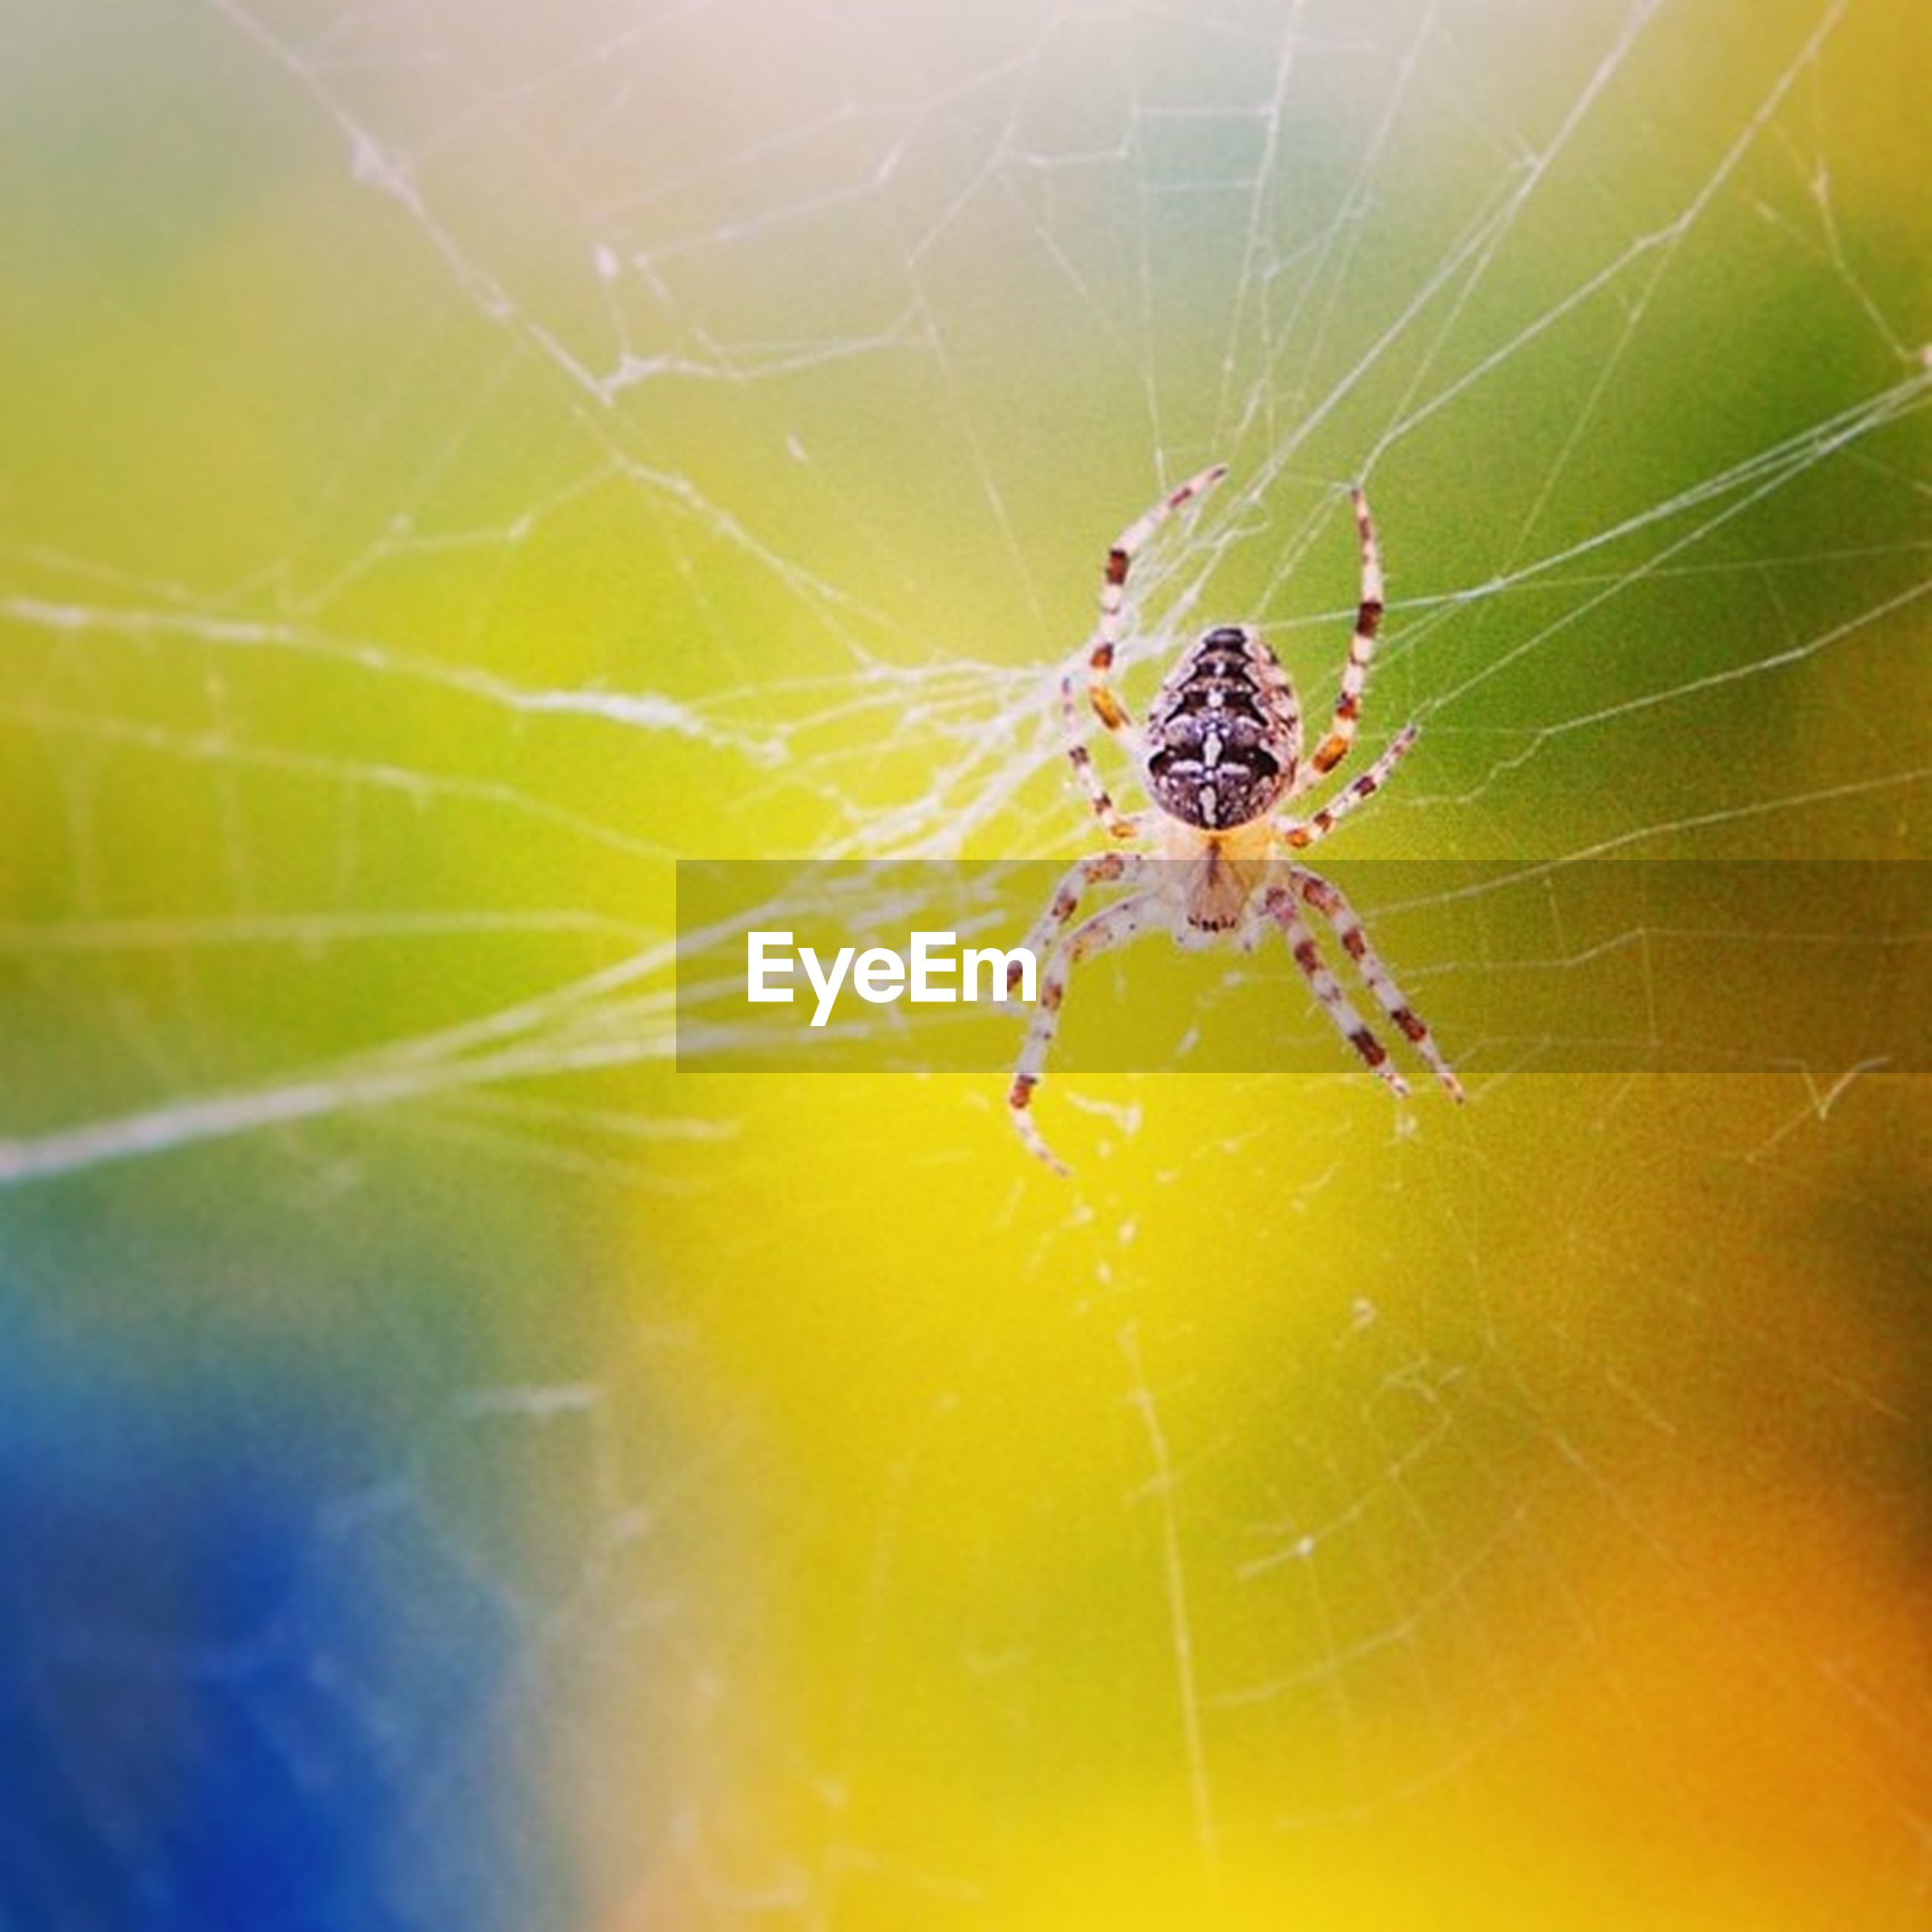 insect, animal themes, one animal, animals in the wild, spider, wildlife, spider web, close-up, focus on foreground, nature, arthropod, fragility, natural pattern, selective focus, outdoors, yellow, beauty in nature, no people, day